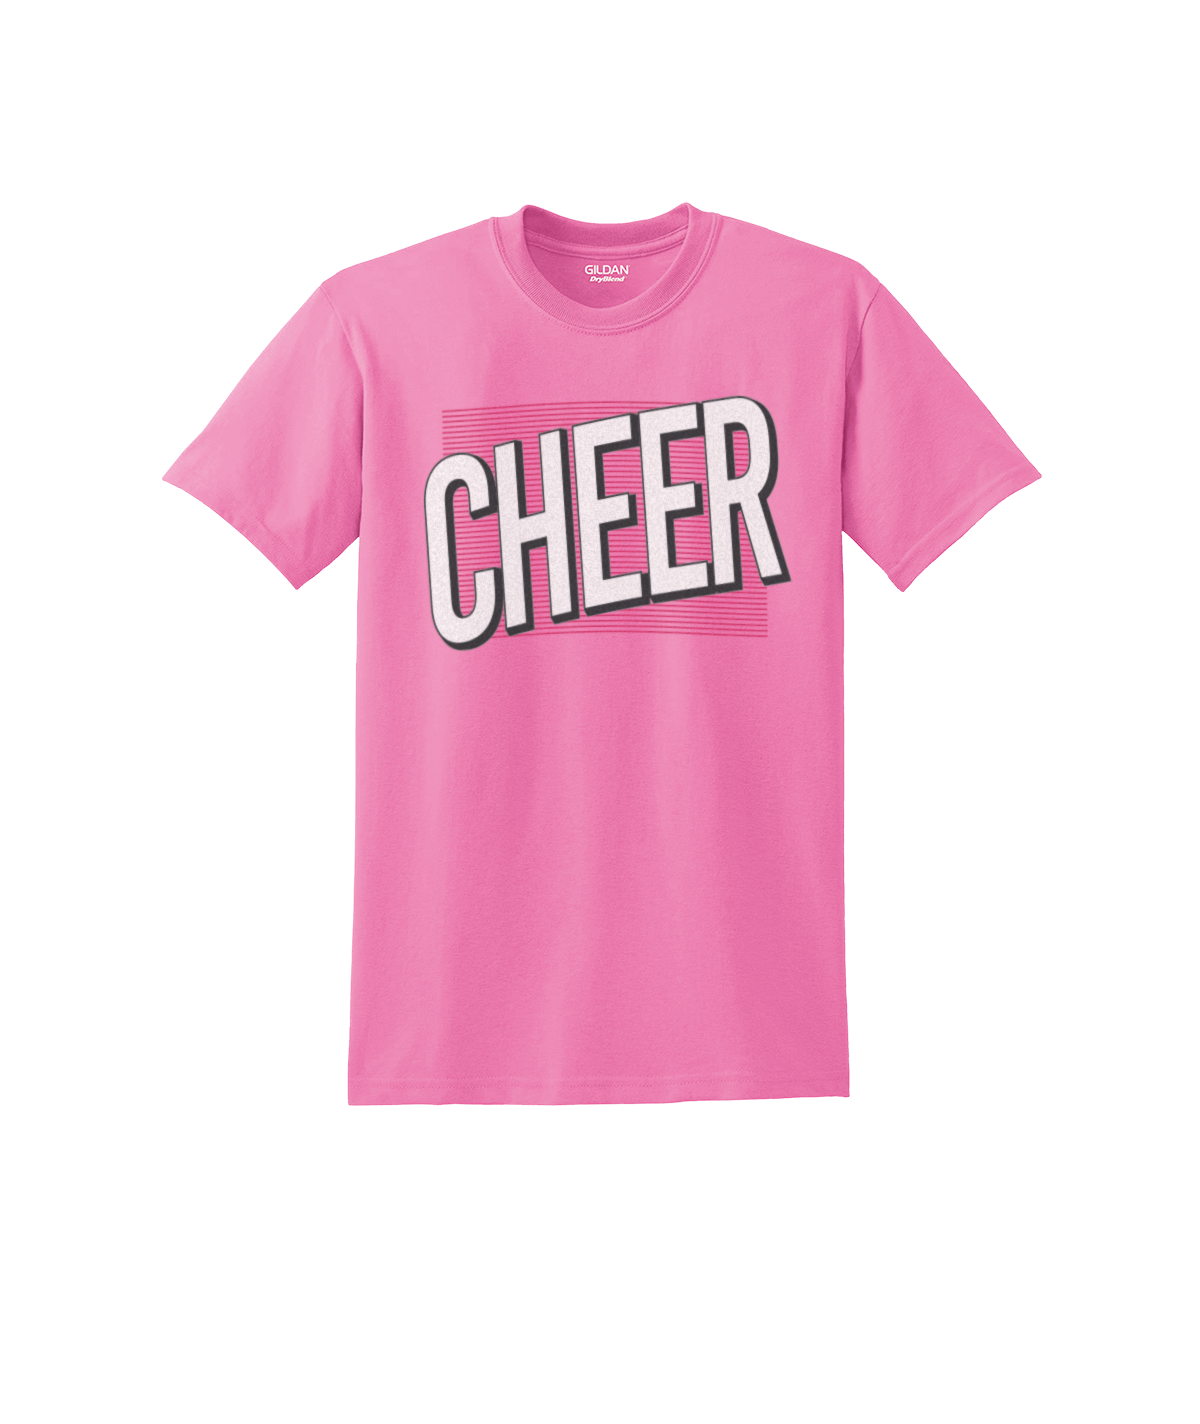 Chasse Cheer All About It Tee